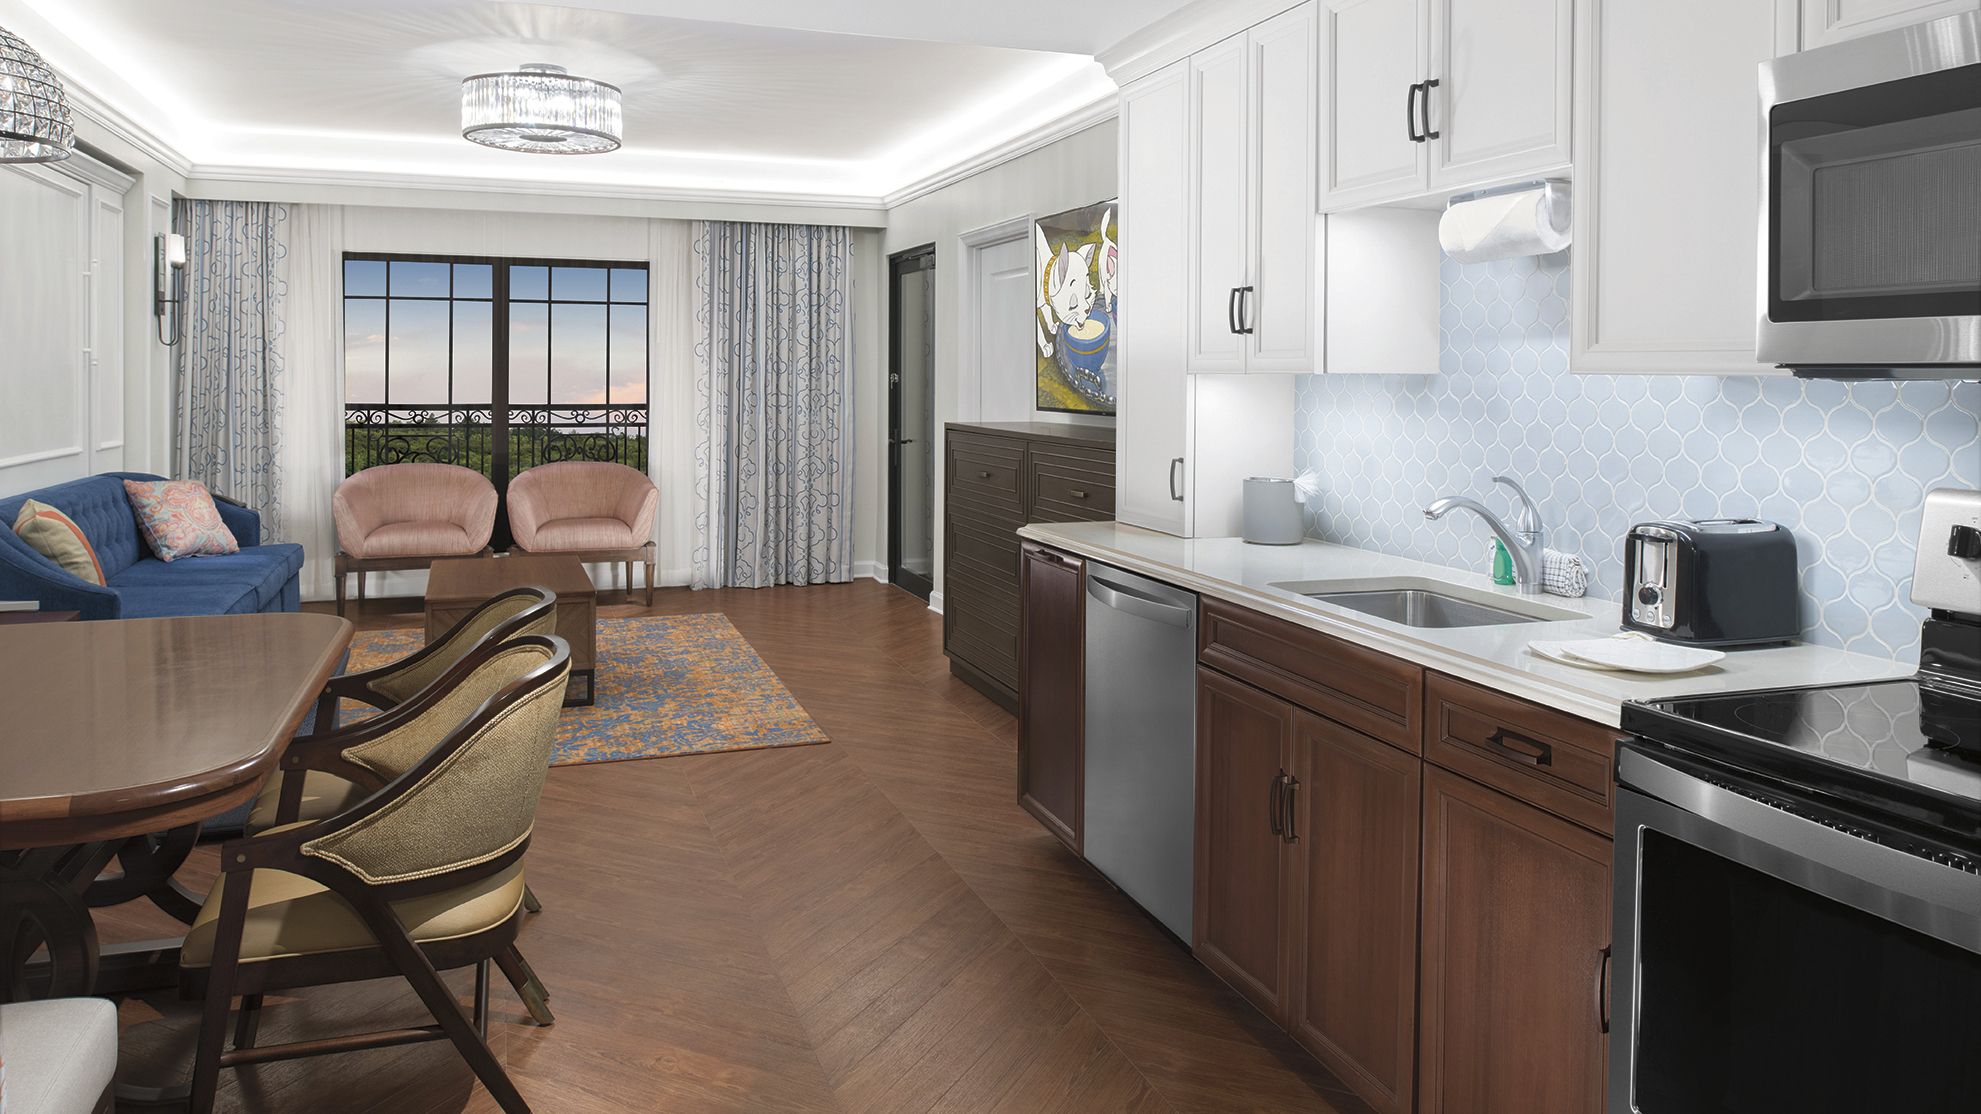 Disney Riviera Resort concept art - 2 Bedroom Villa